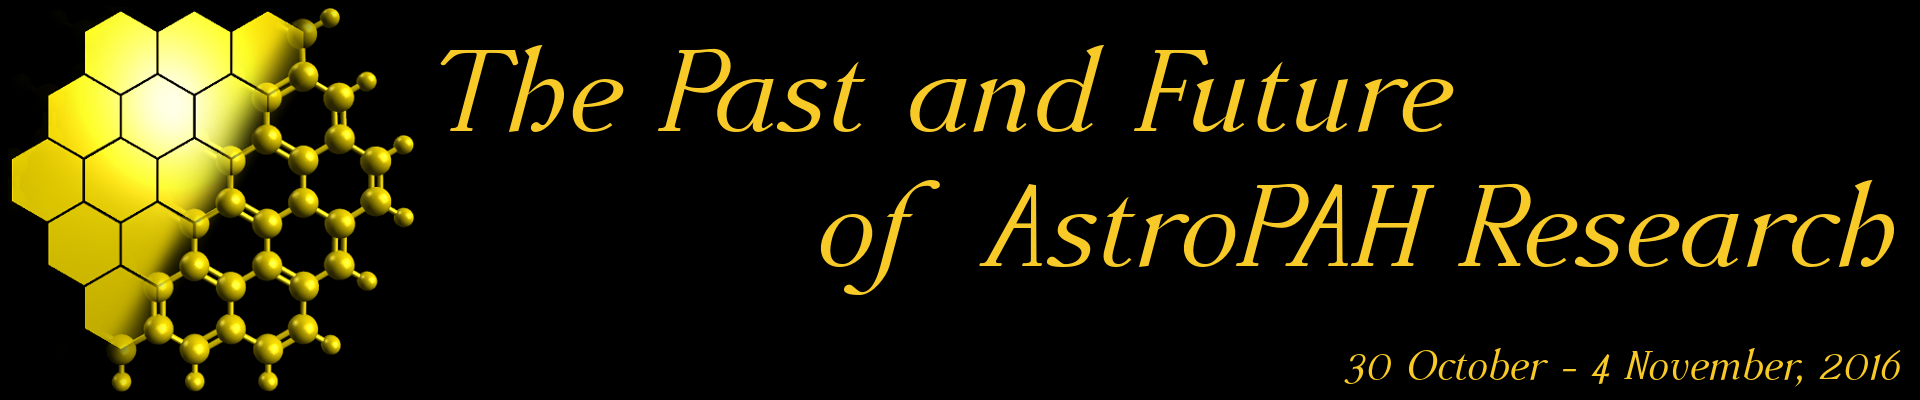 The Past and Future of AstroPAH Research